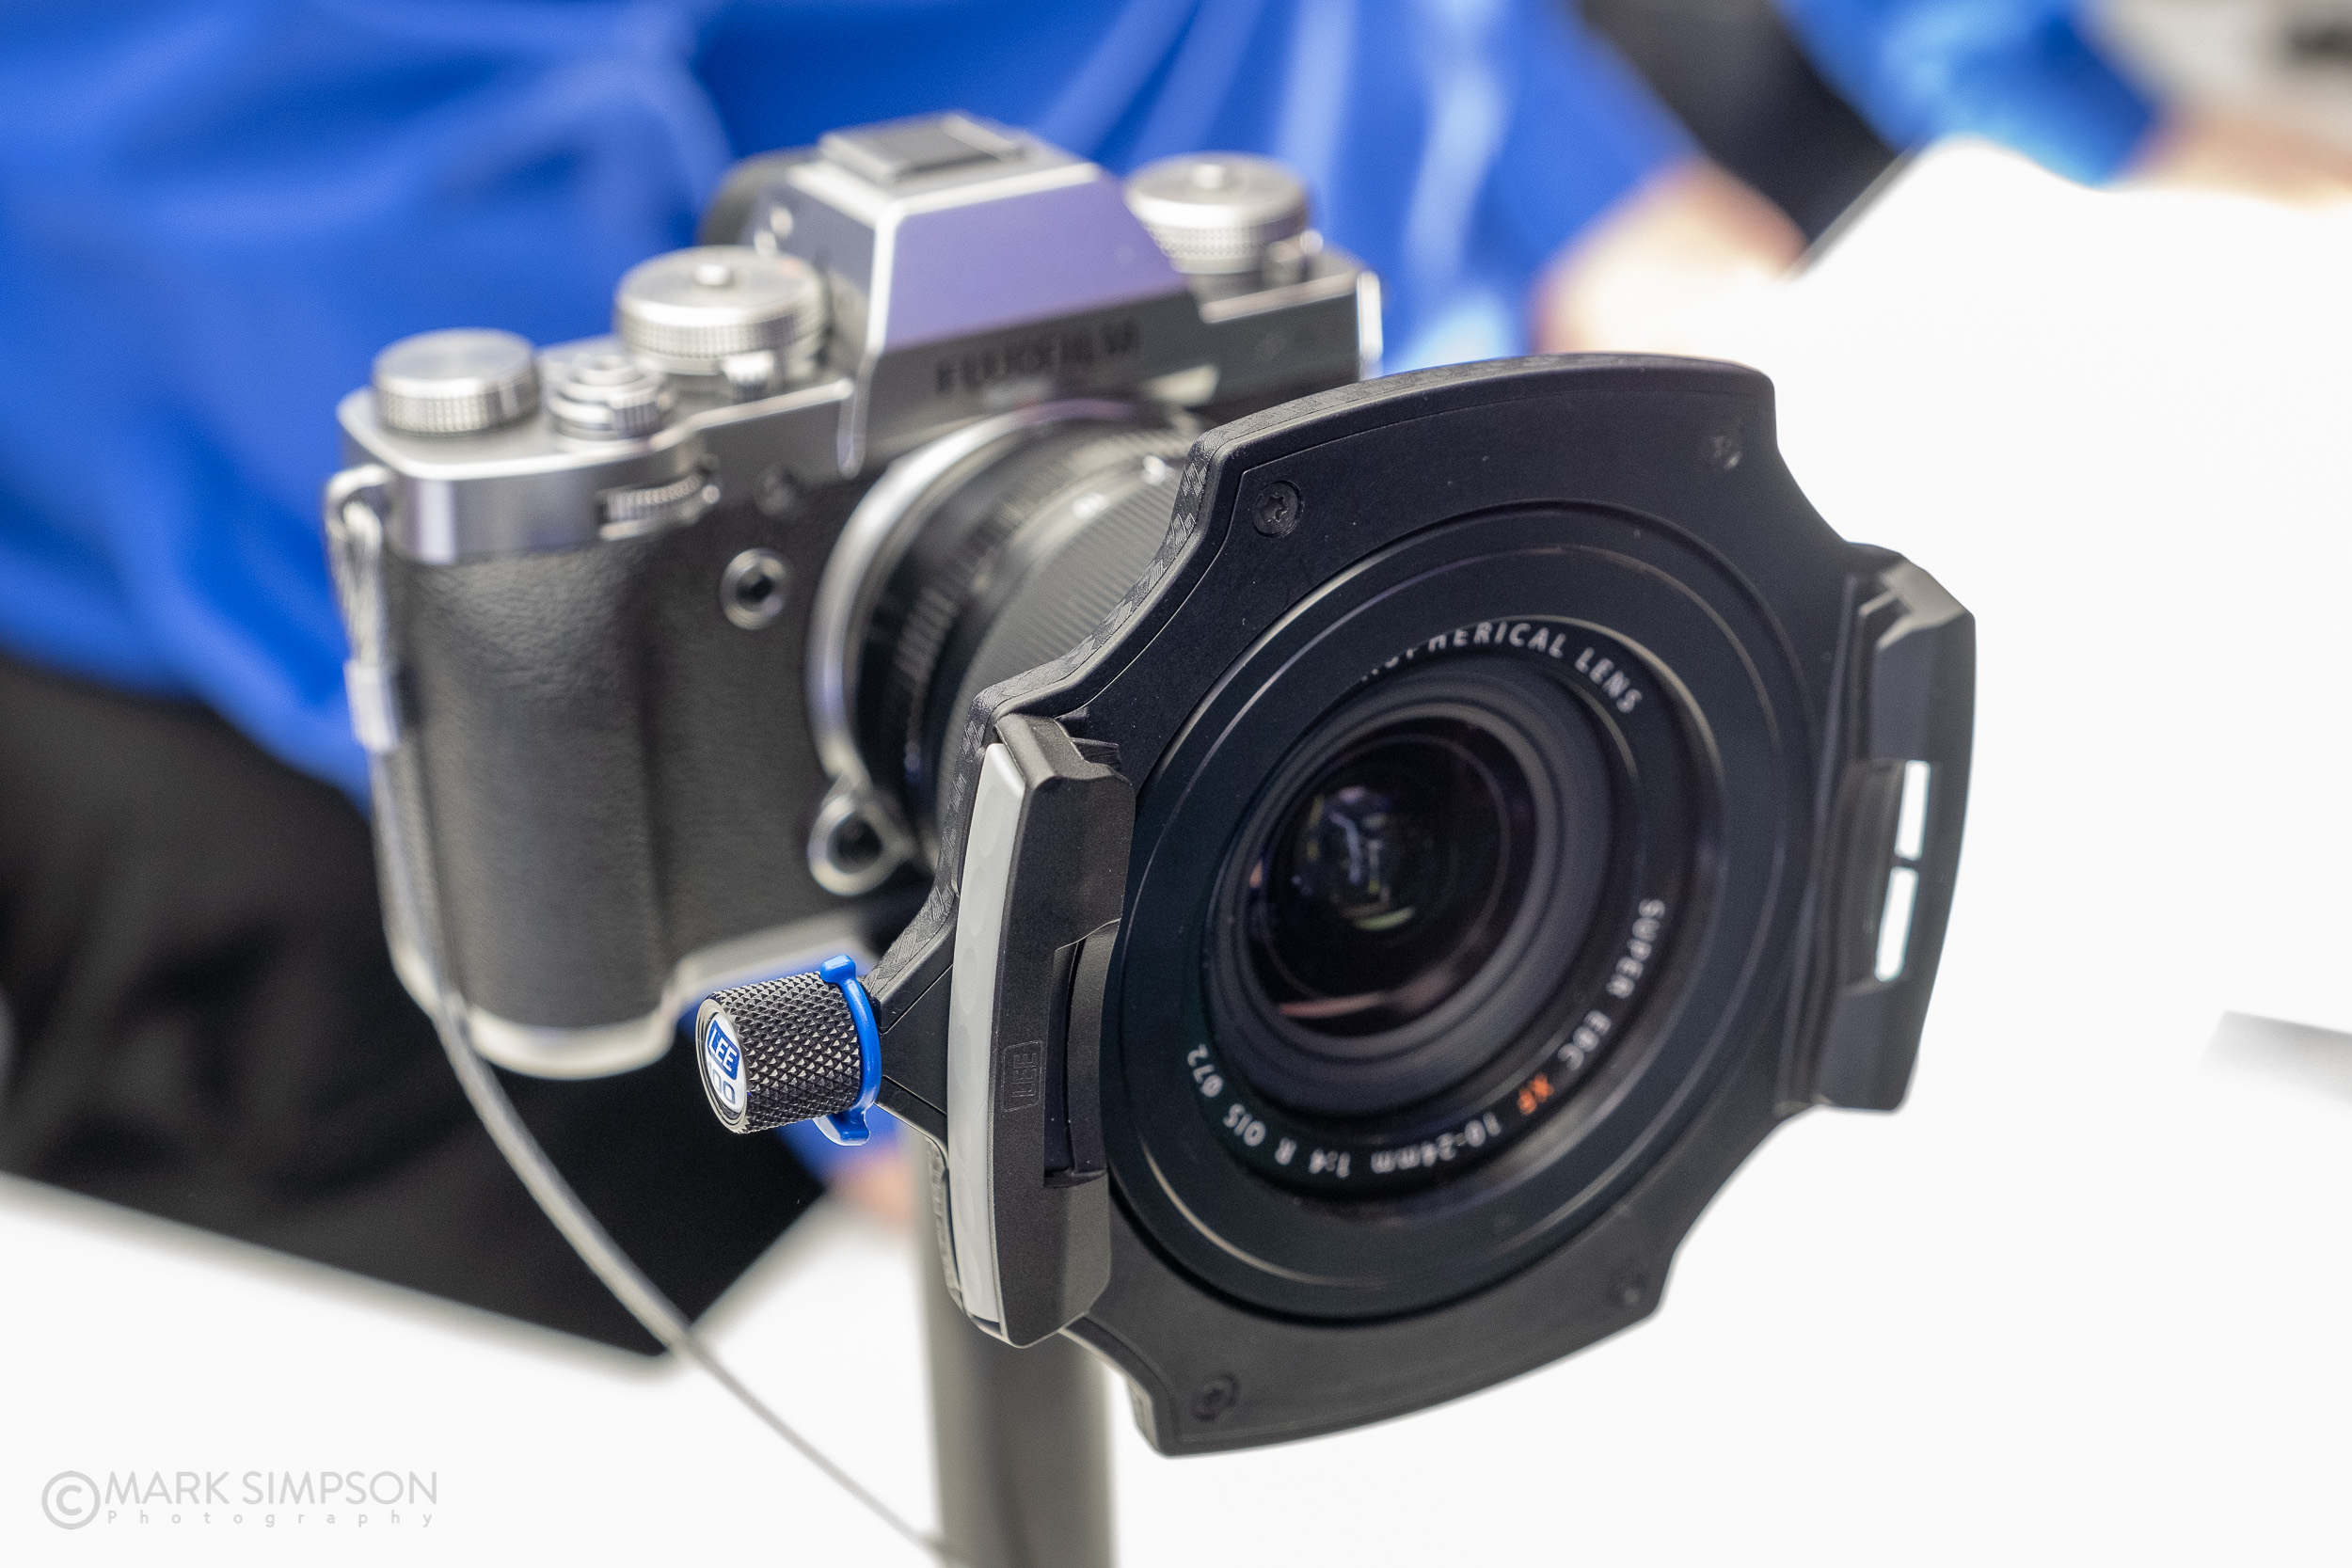 The new Lee Filters 'Lee 100' filter holder. (FujiFilm X-T2, Fujinon XF16-55mmF2.8 R LM WR)